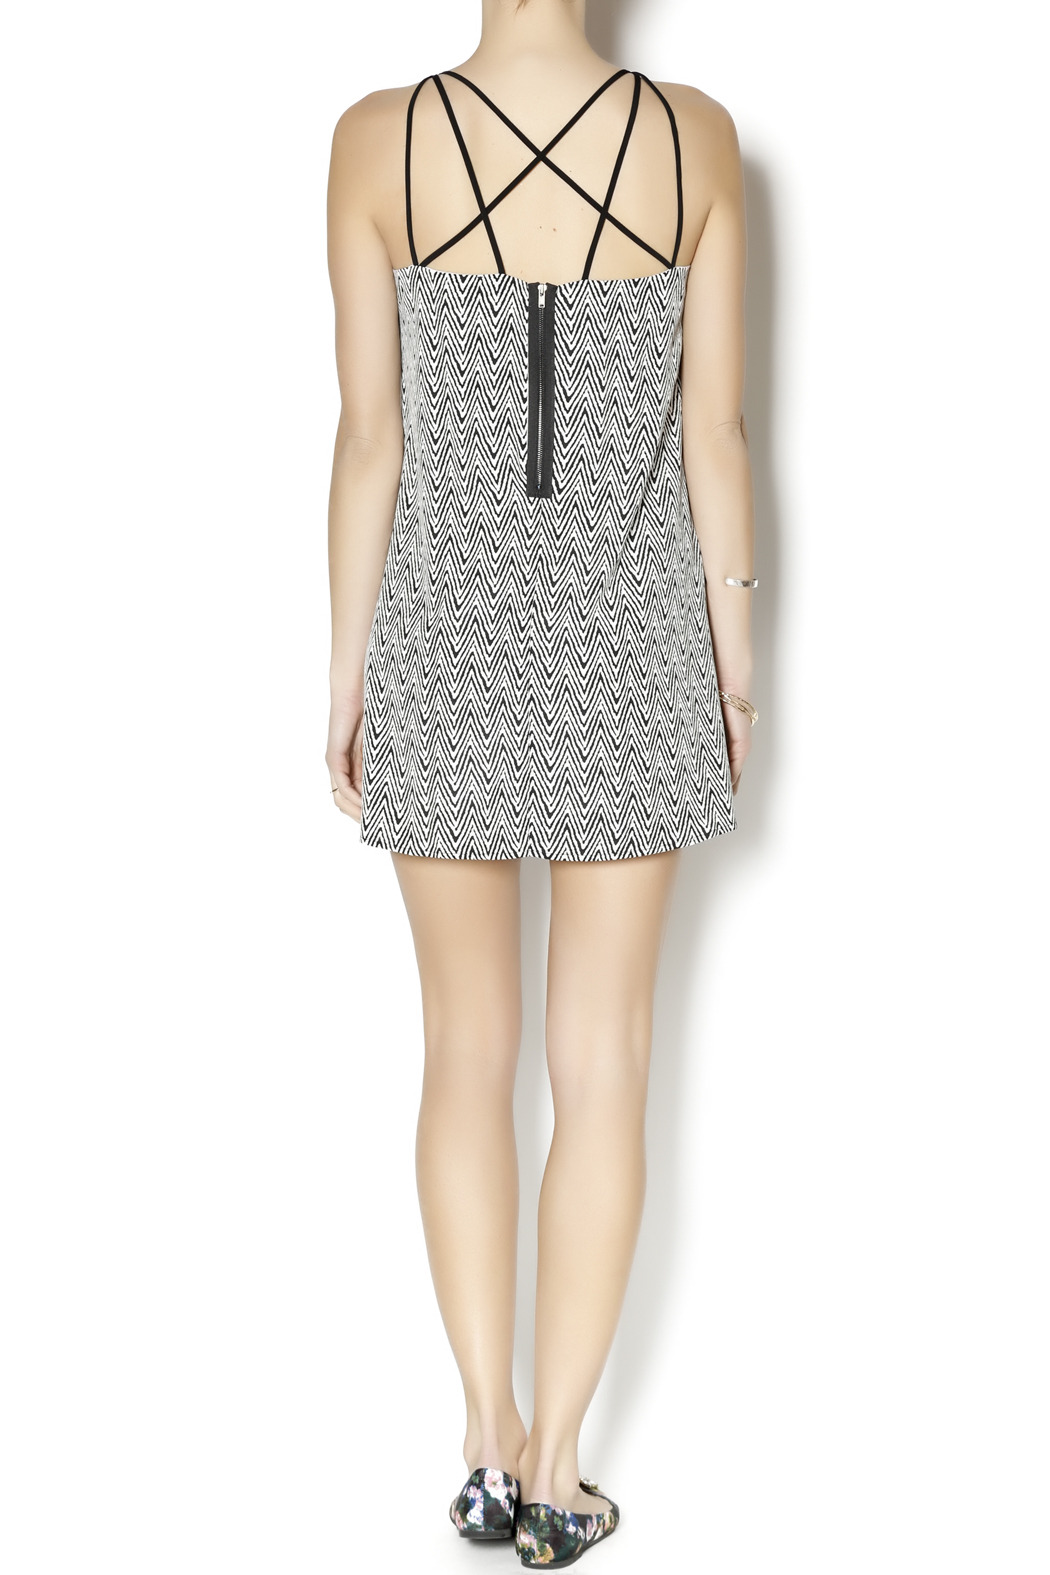 Coveted Clothing Zig Zag Dress - Side Cropped Image